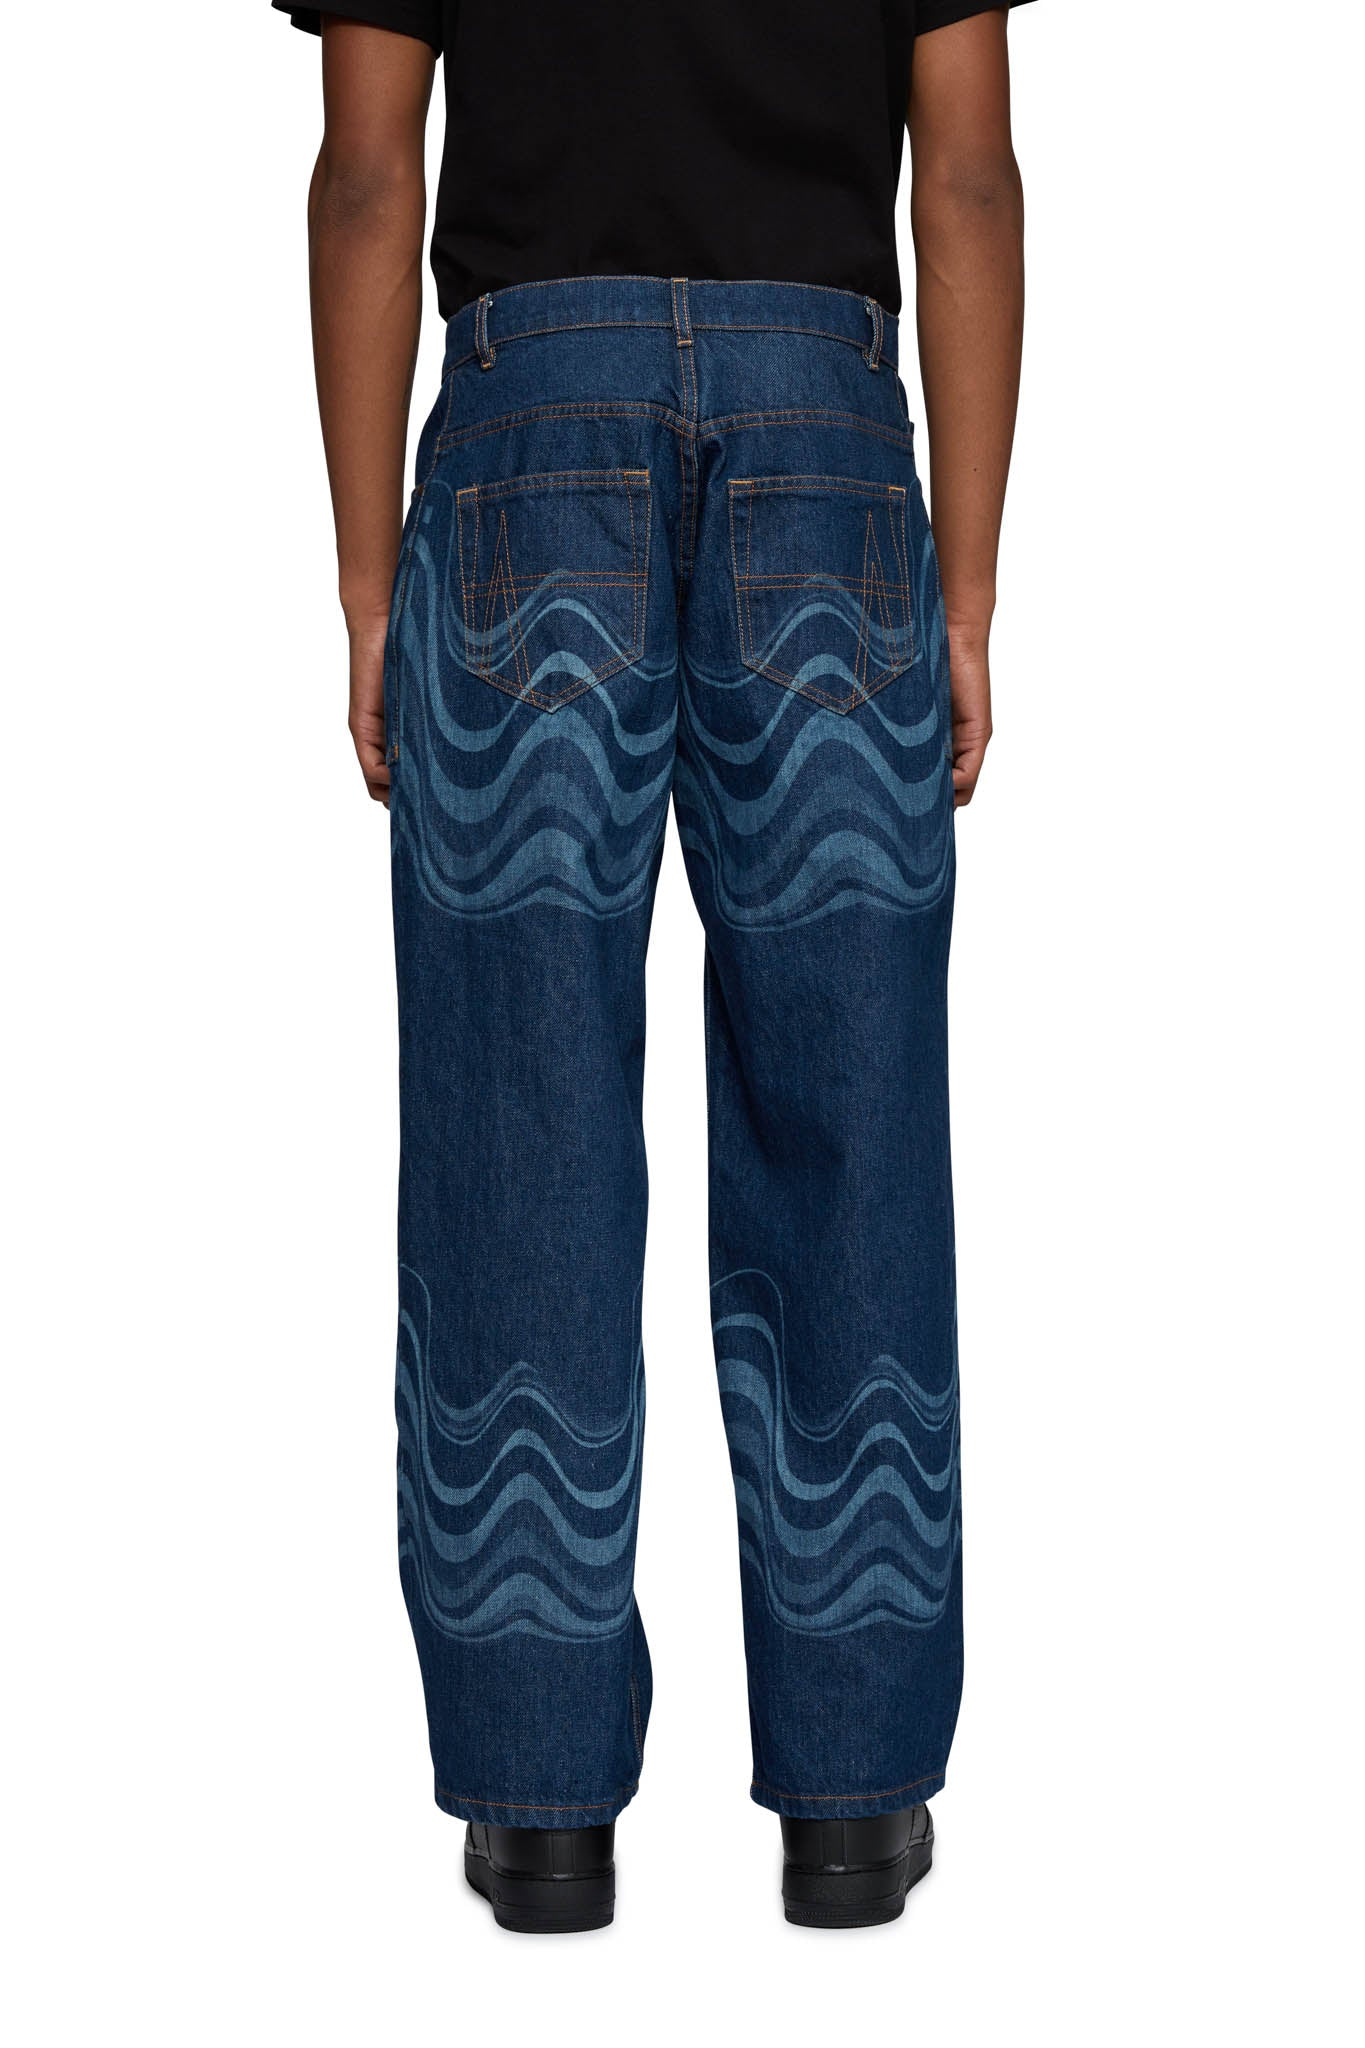 AHLUWALIA, 2B LOW RISE JEANS, BLUE, AW20AS27, AW20, COTTON, JEANS, MENS